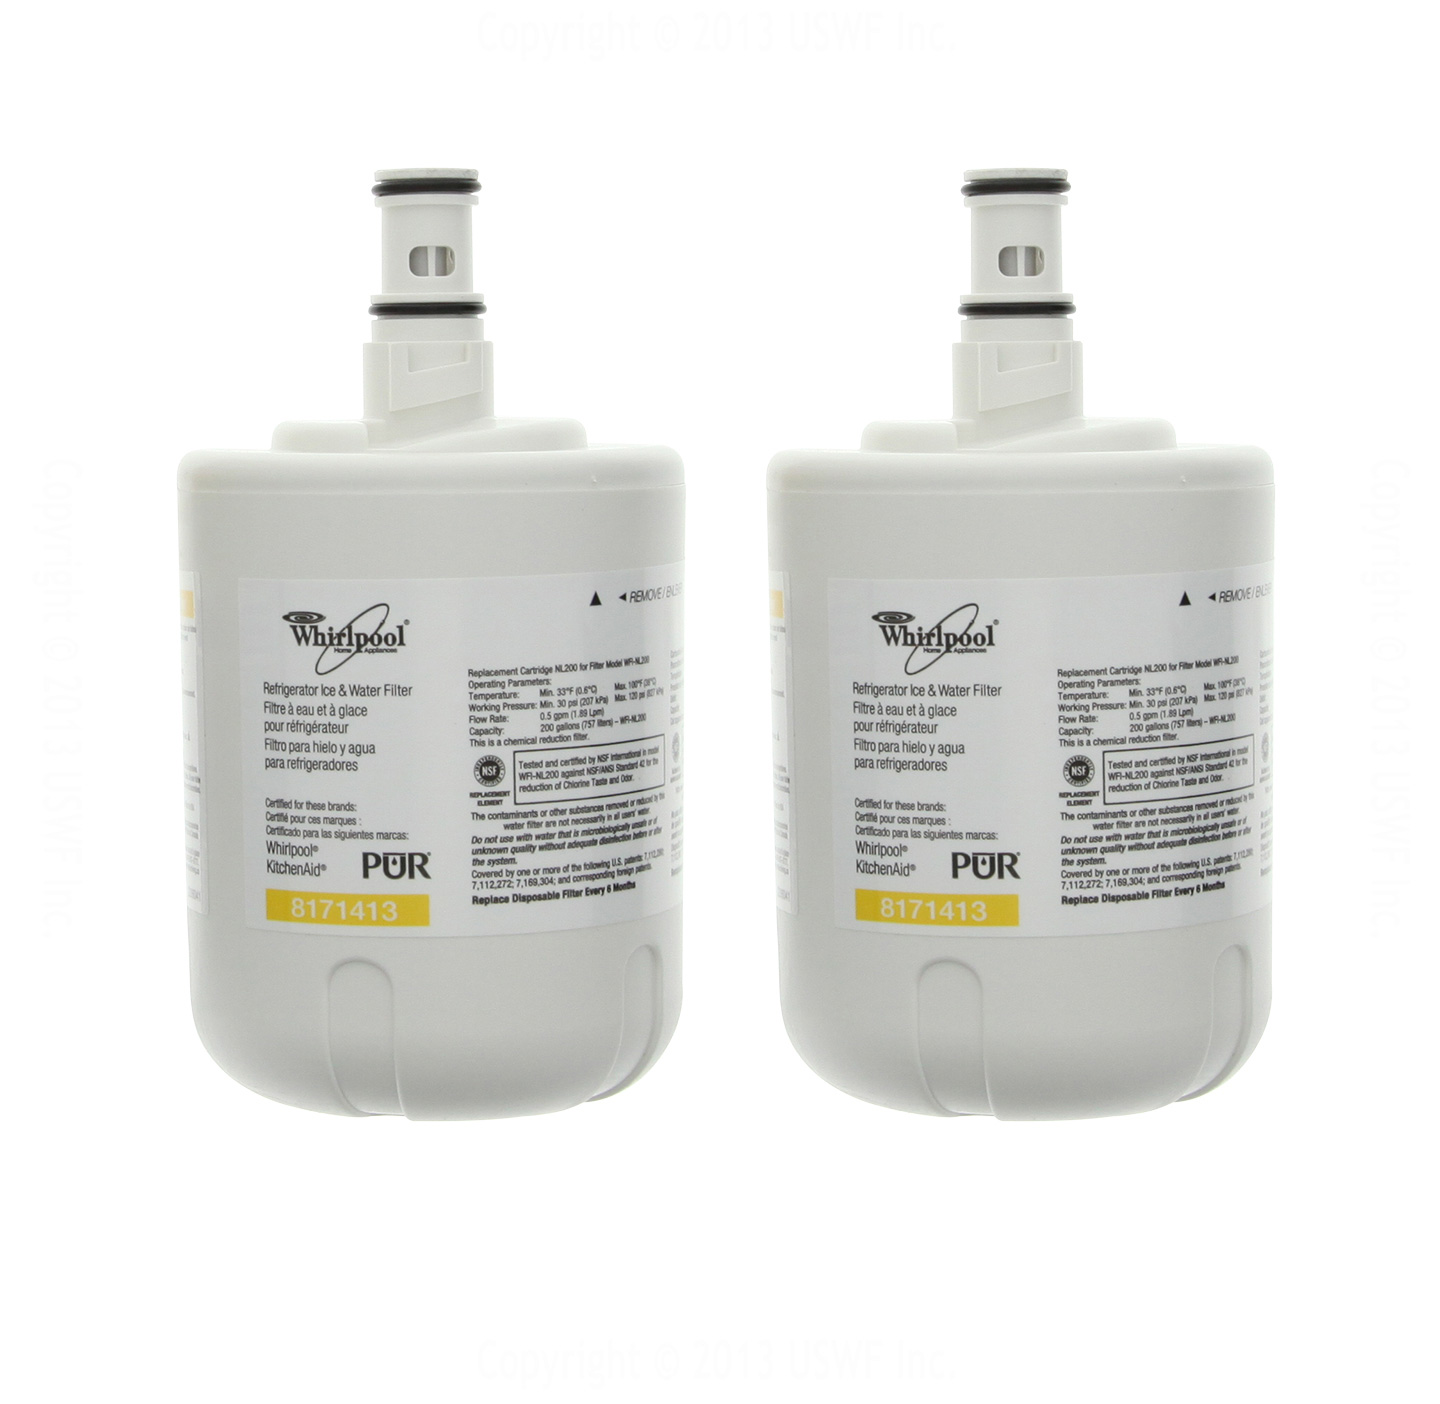 8171413 Whirlpool Refrigerator Water Filter (2-Pack) 8171413_2_PACK